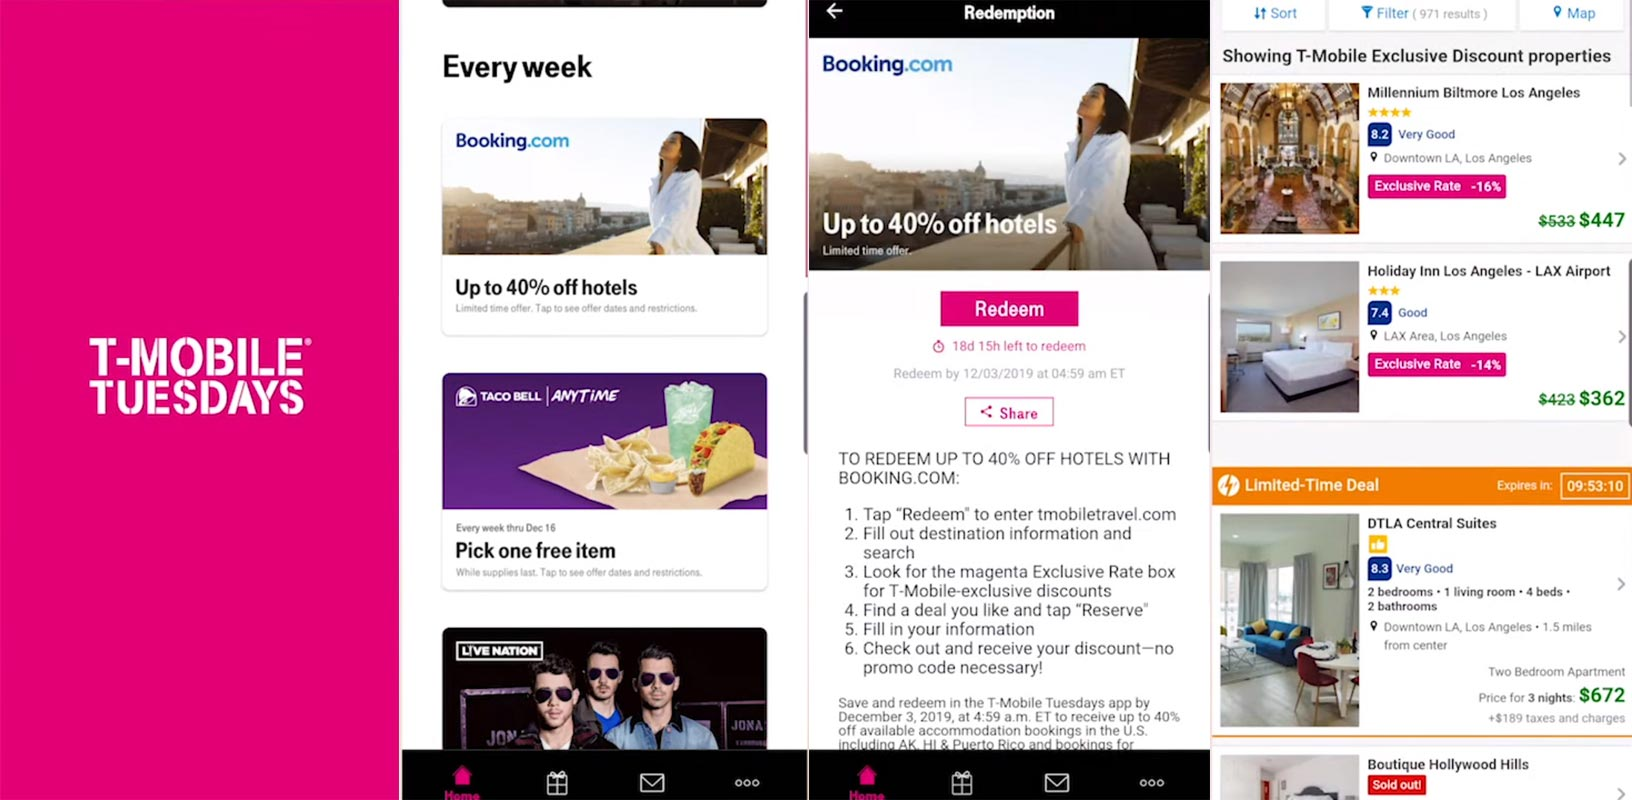 T-Mobile Tuesday Promotions Redeem App Screenshots